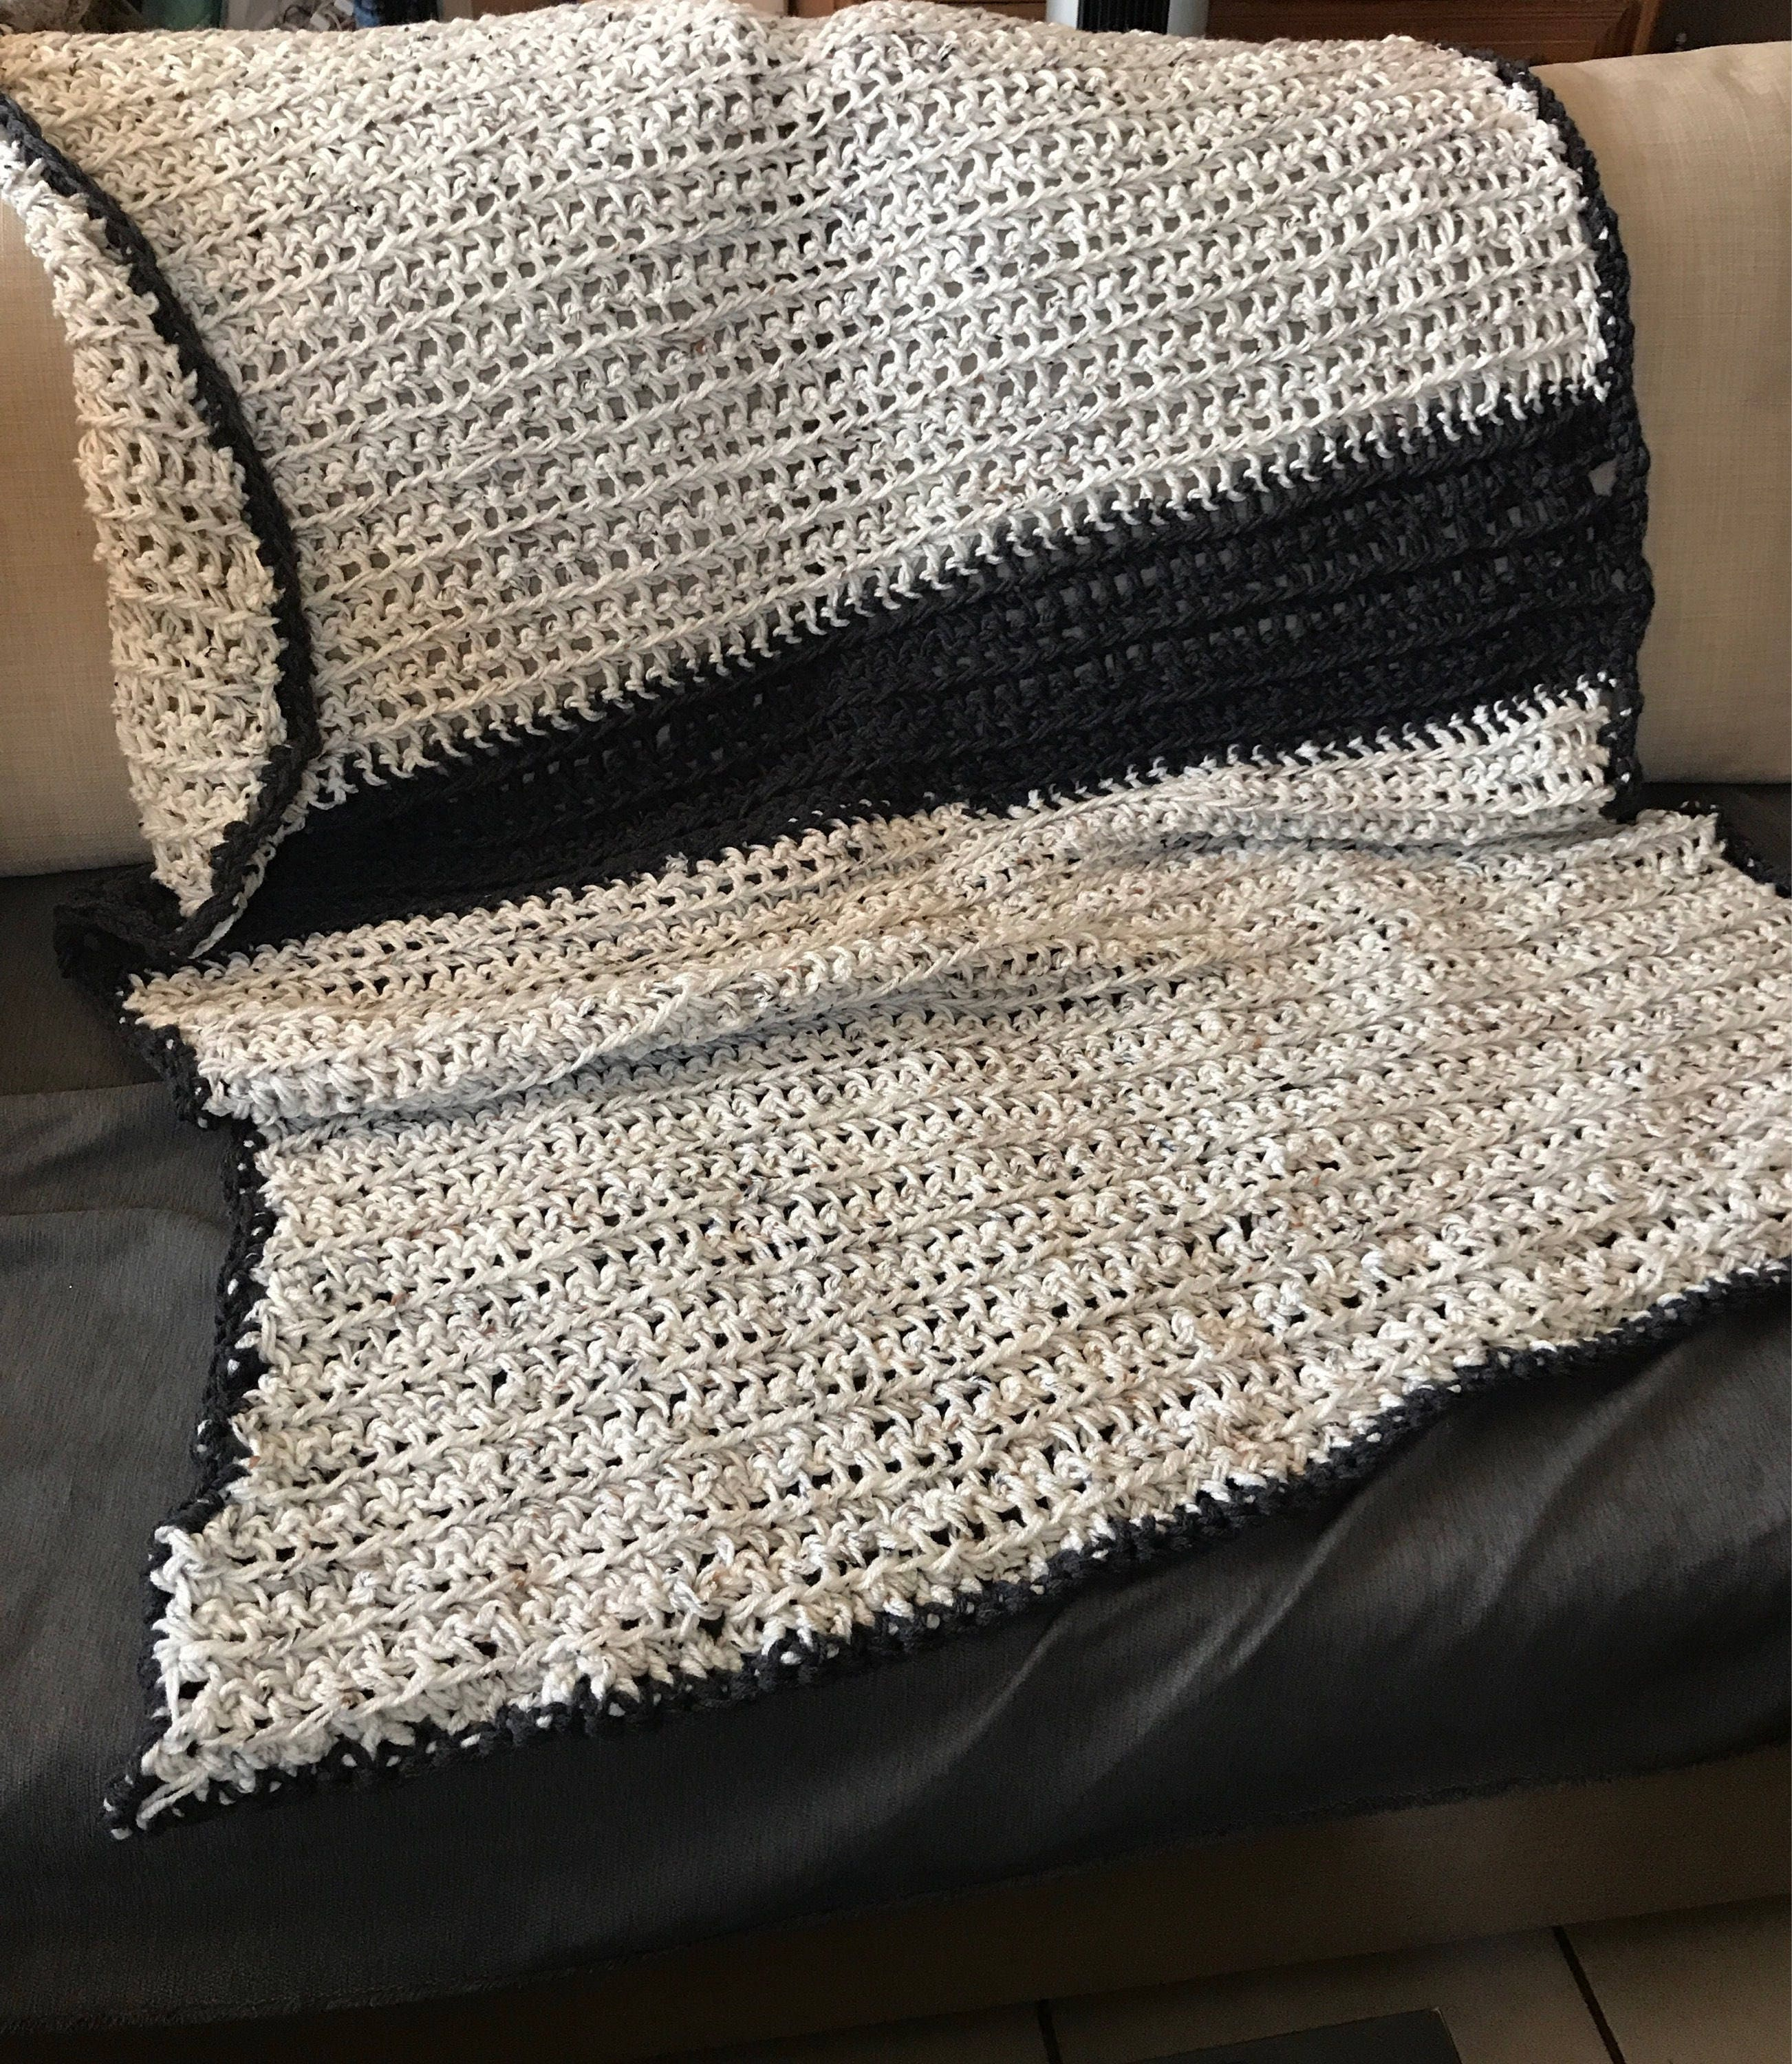 Throw Blanket / Afghan Blanket  Wrap Yourself In The Warmth Of Handmade  Goodness.